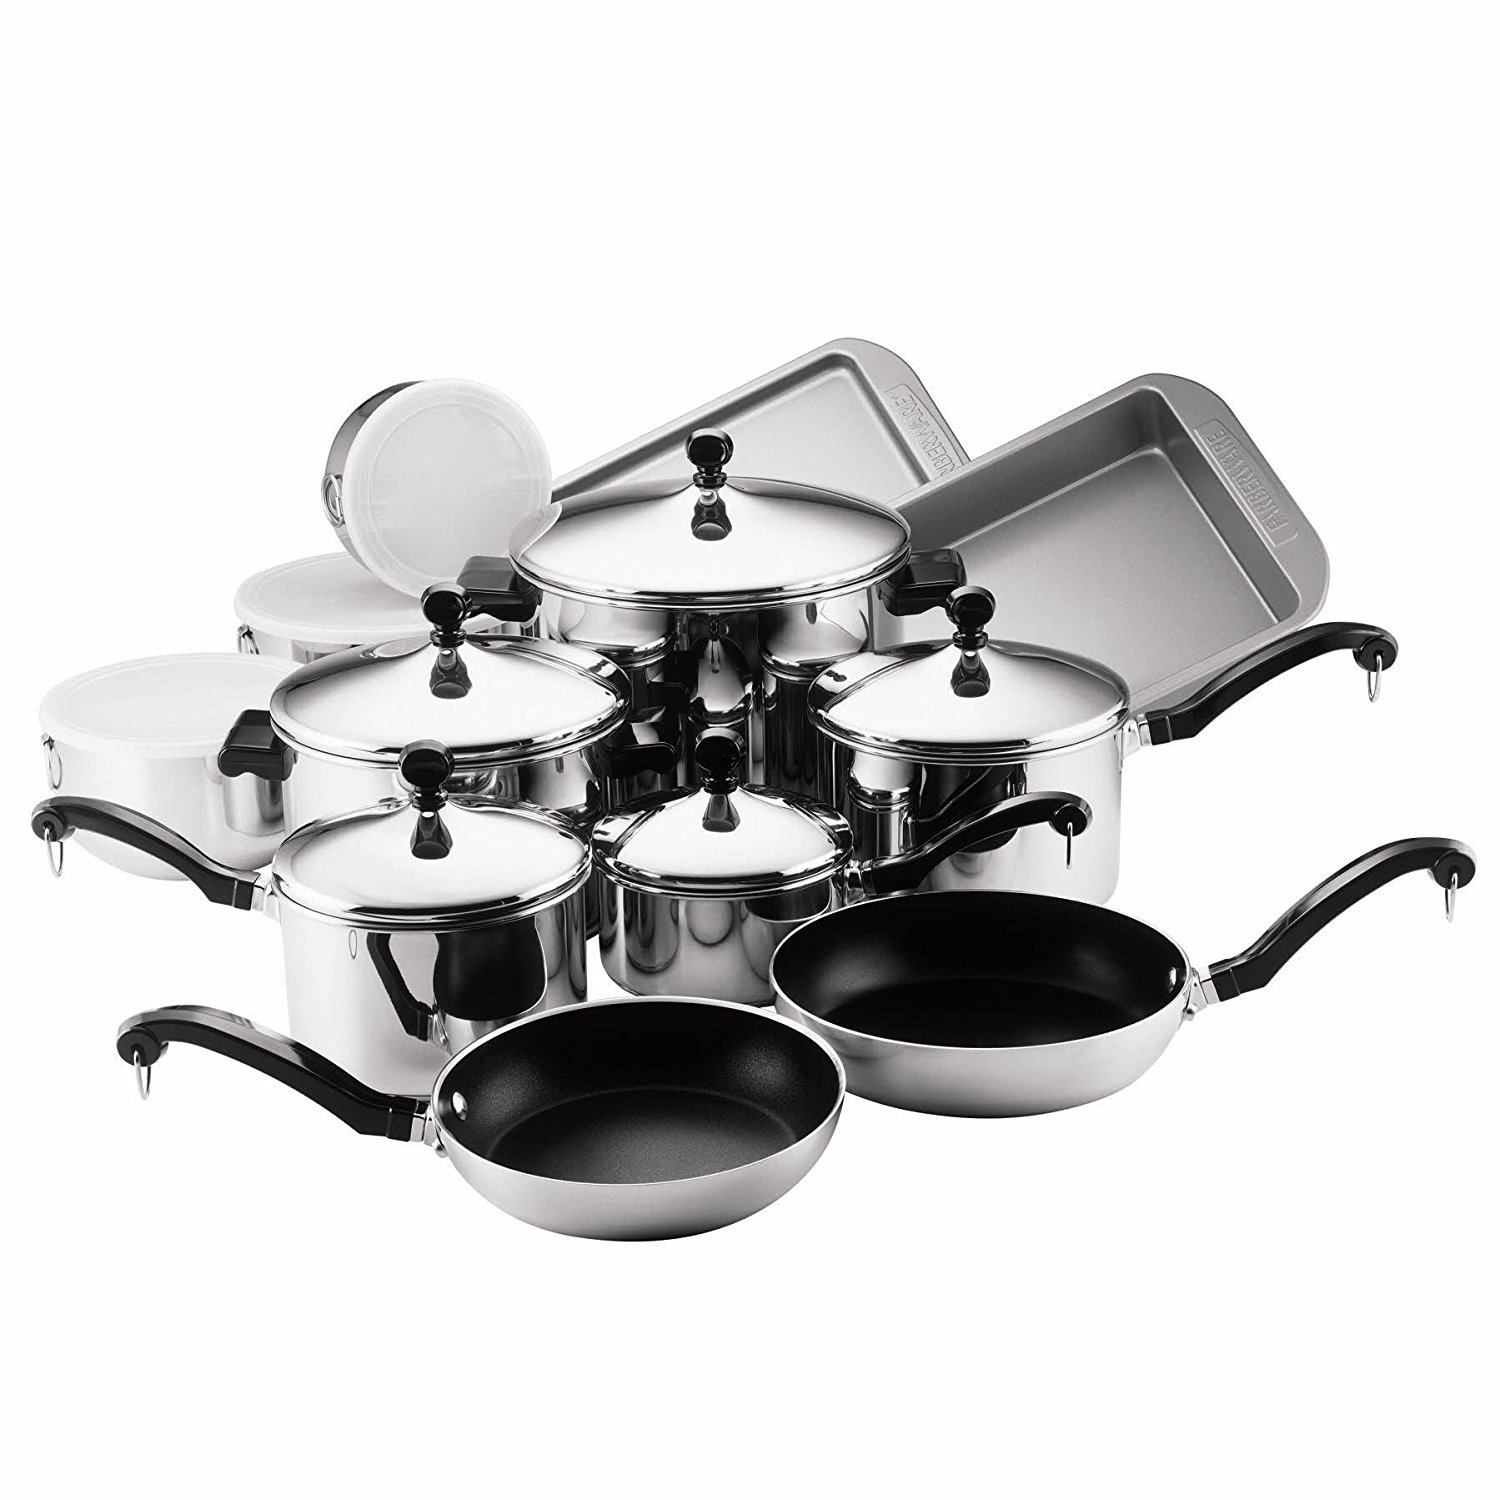 Farberware Classic Stainless Steel 17-Piece Cookware Set Review